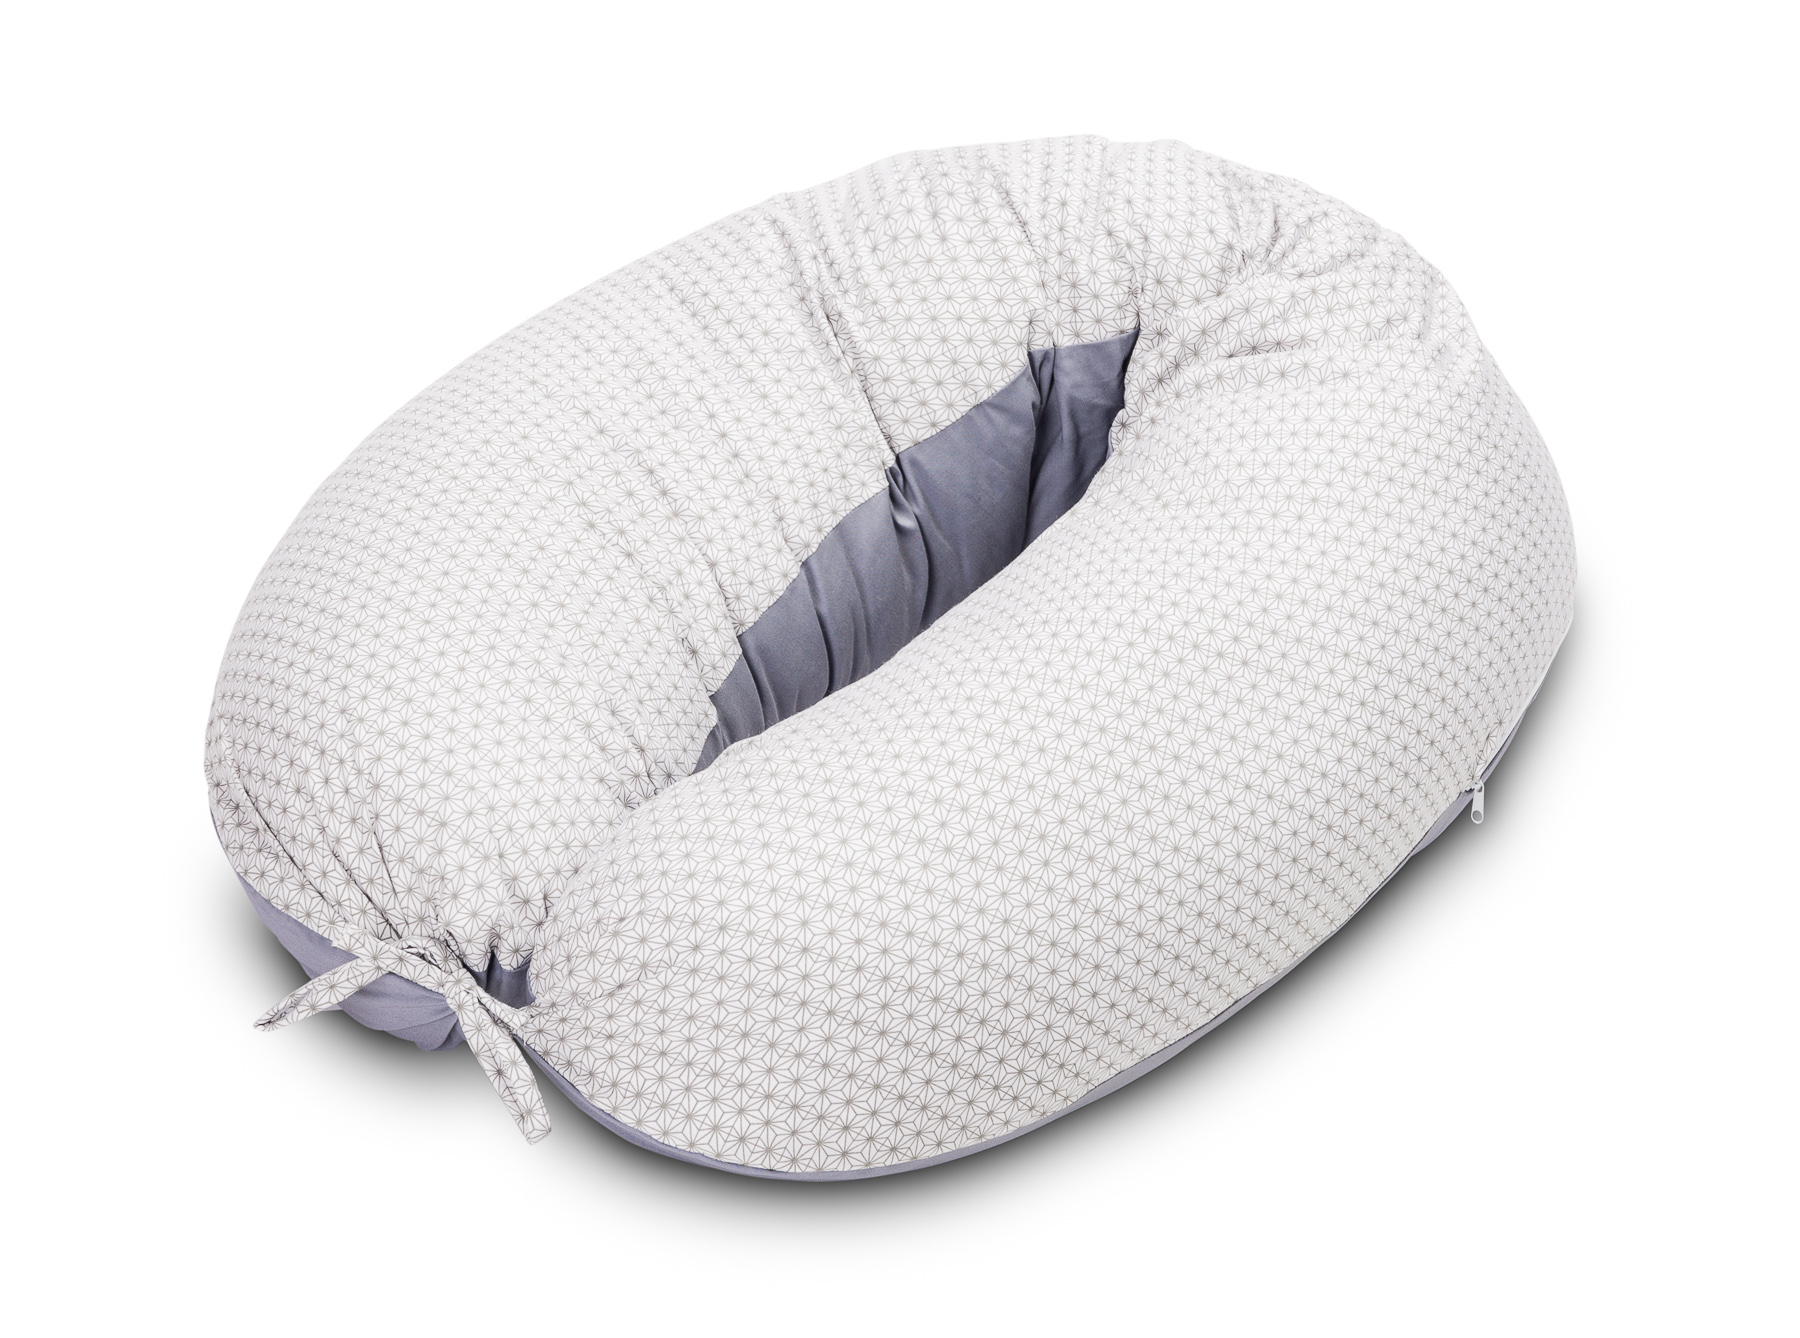 XL Pregnancy Pillow Graphite Patterns